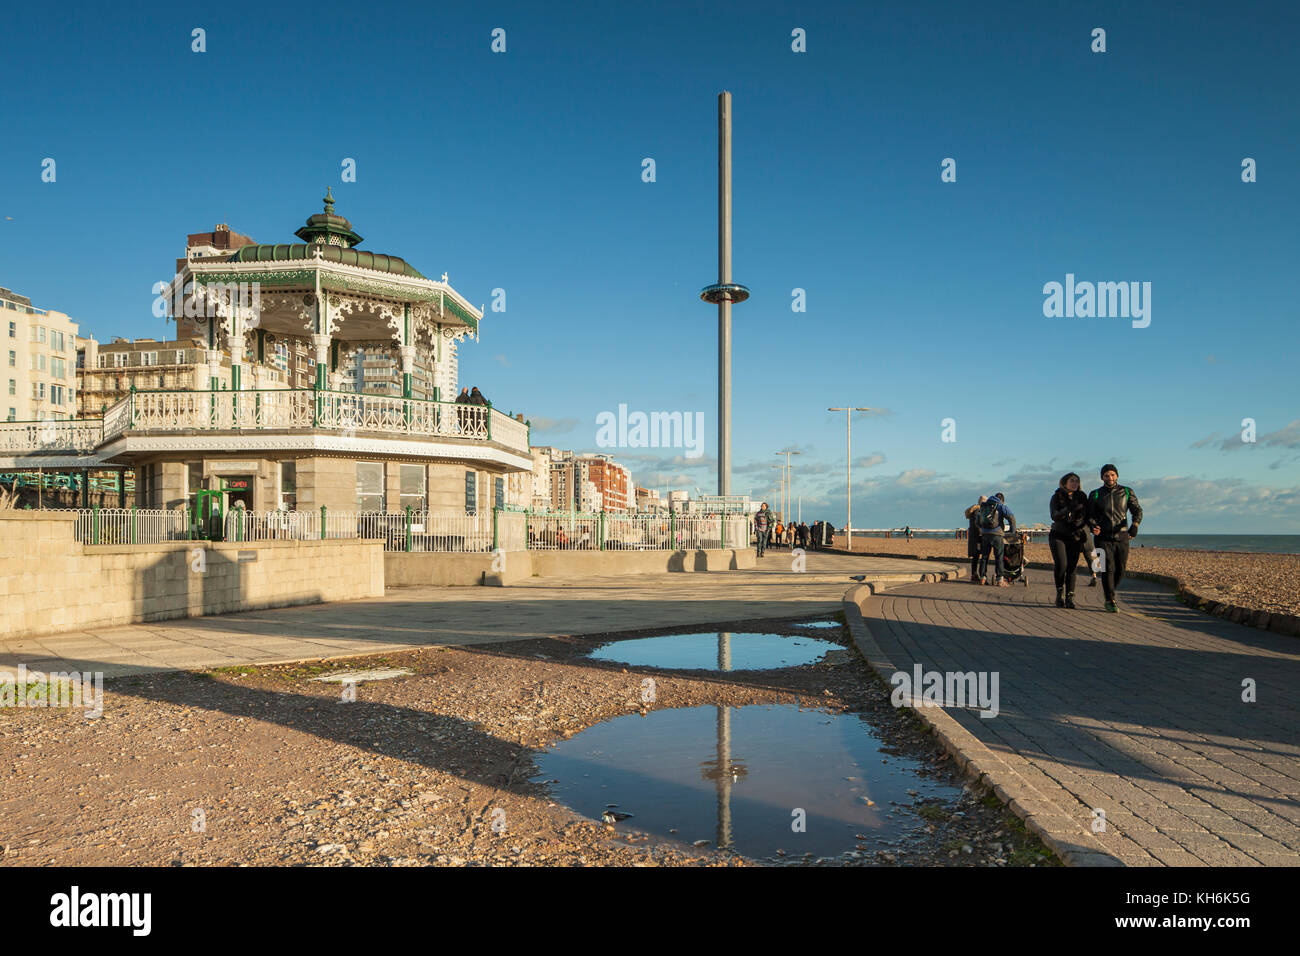 Autumn afternoon on Brighton seafront, England. The Bandstand and i360 tower in the distance. - Stock Image